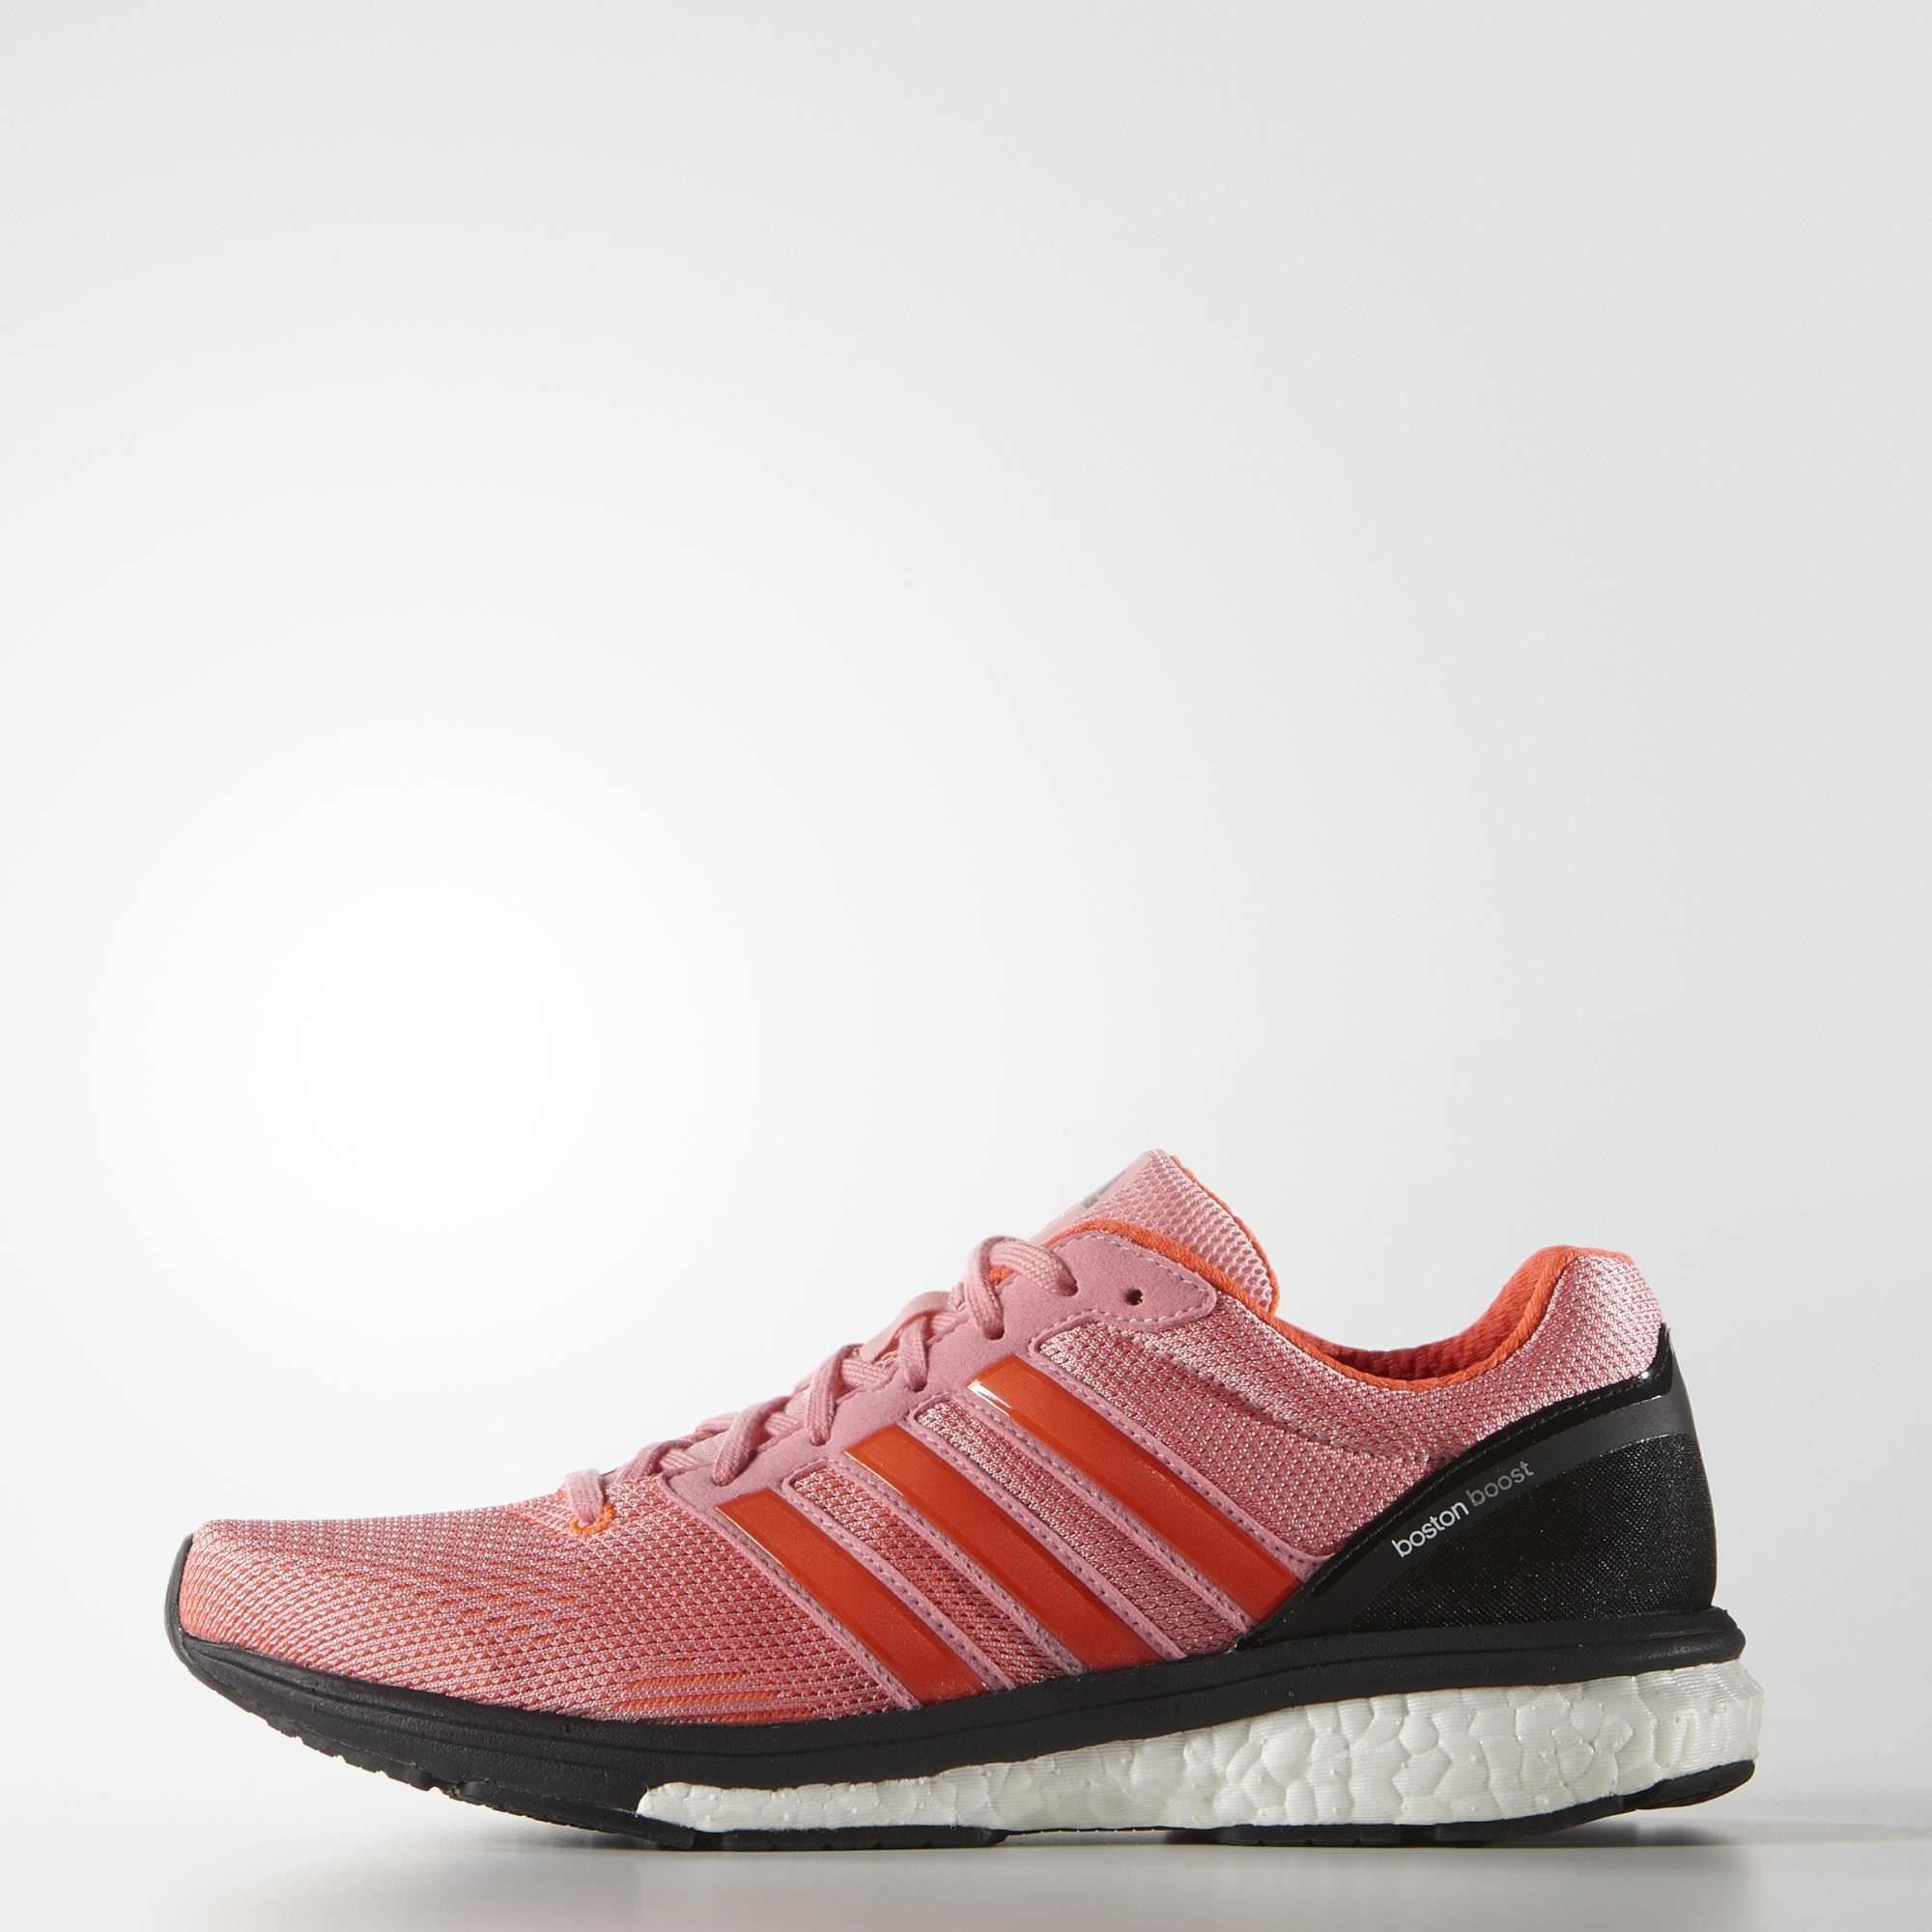 2904331416573 Adidas Womens Adizero Boston Boost 5 Running Shoes - Super Pop Solar Red -  Tennisnuts.com